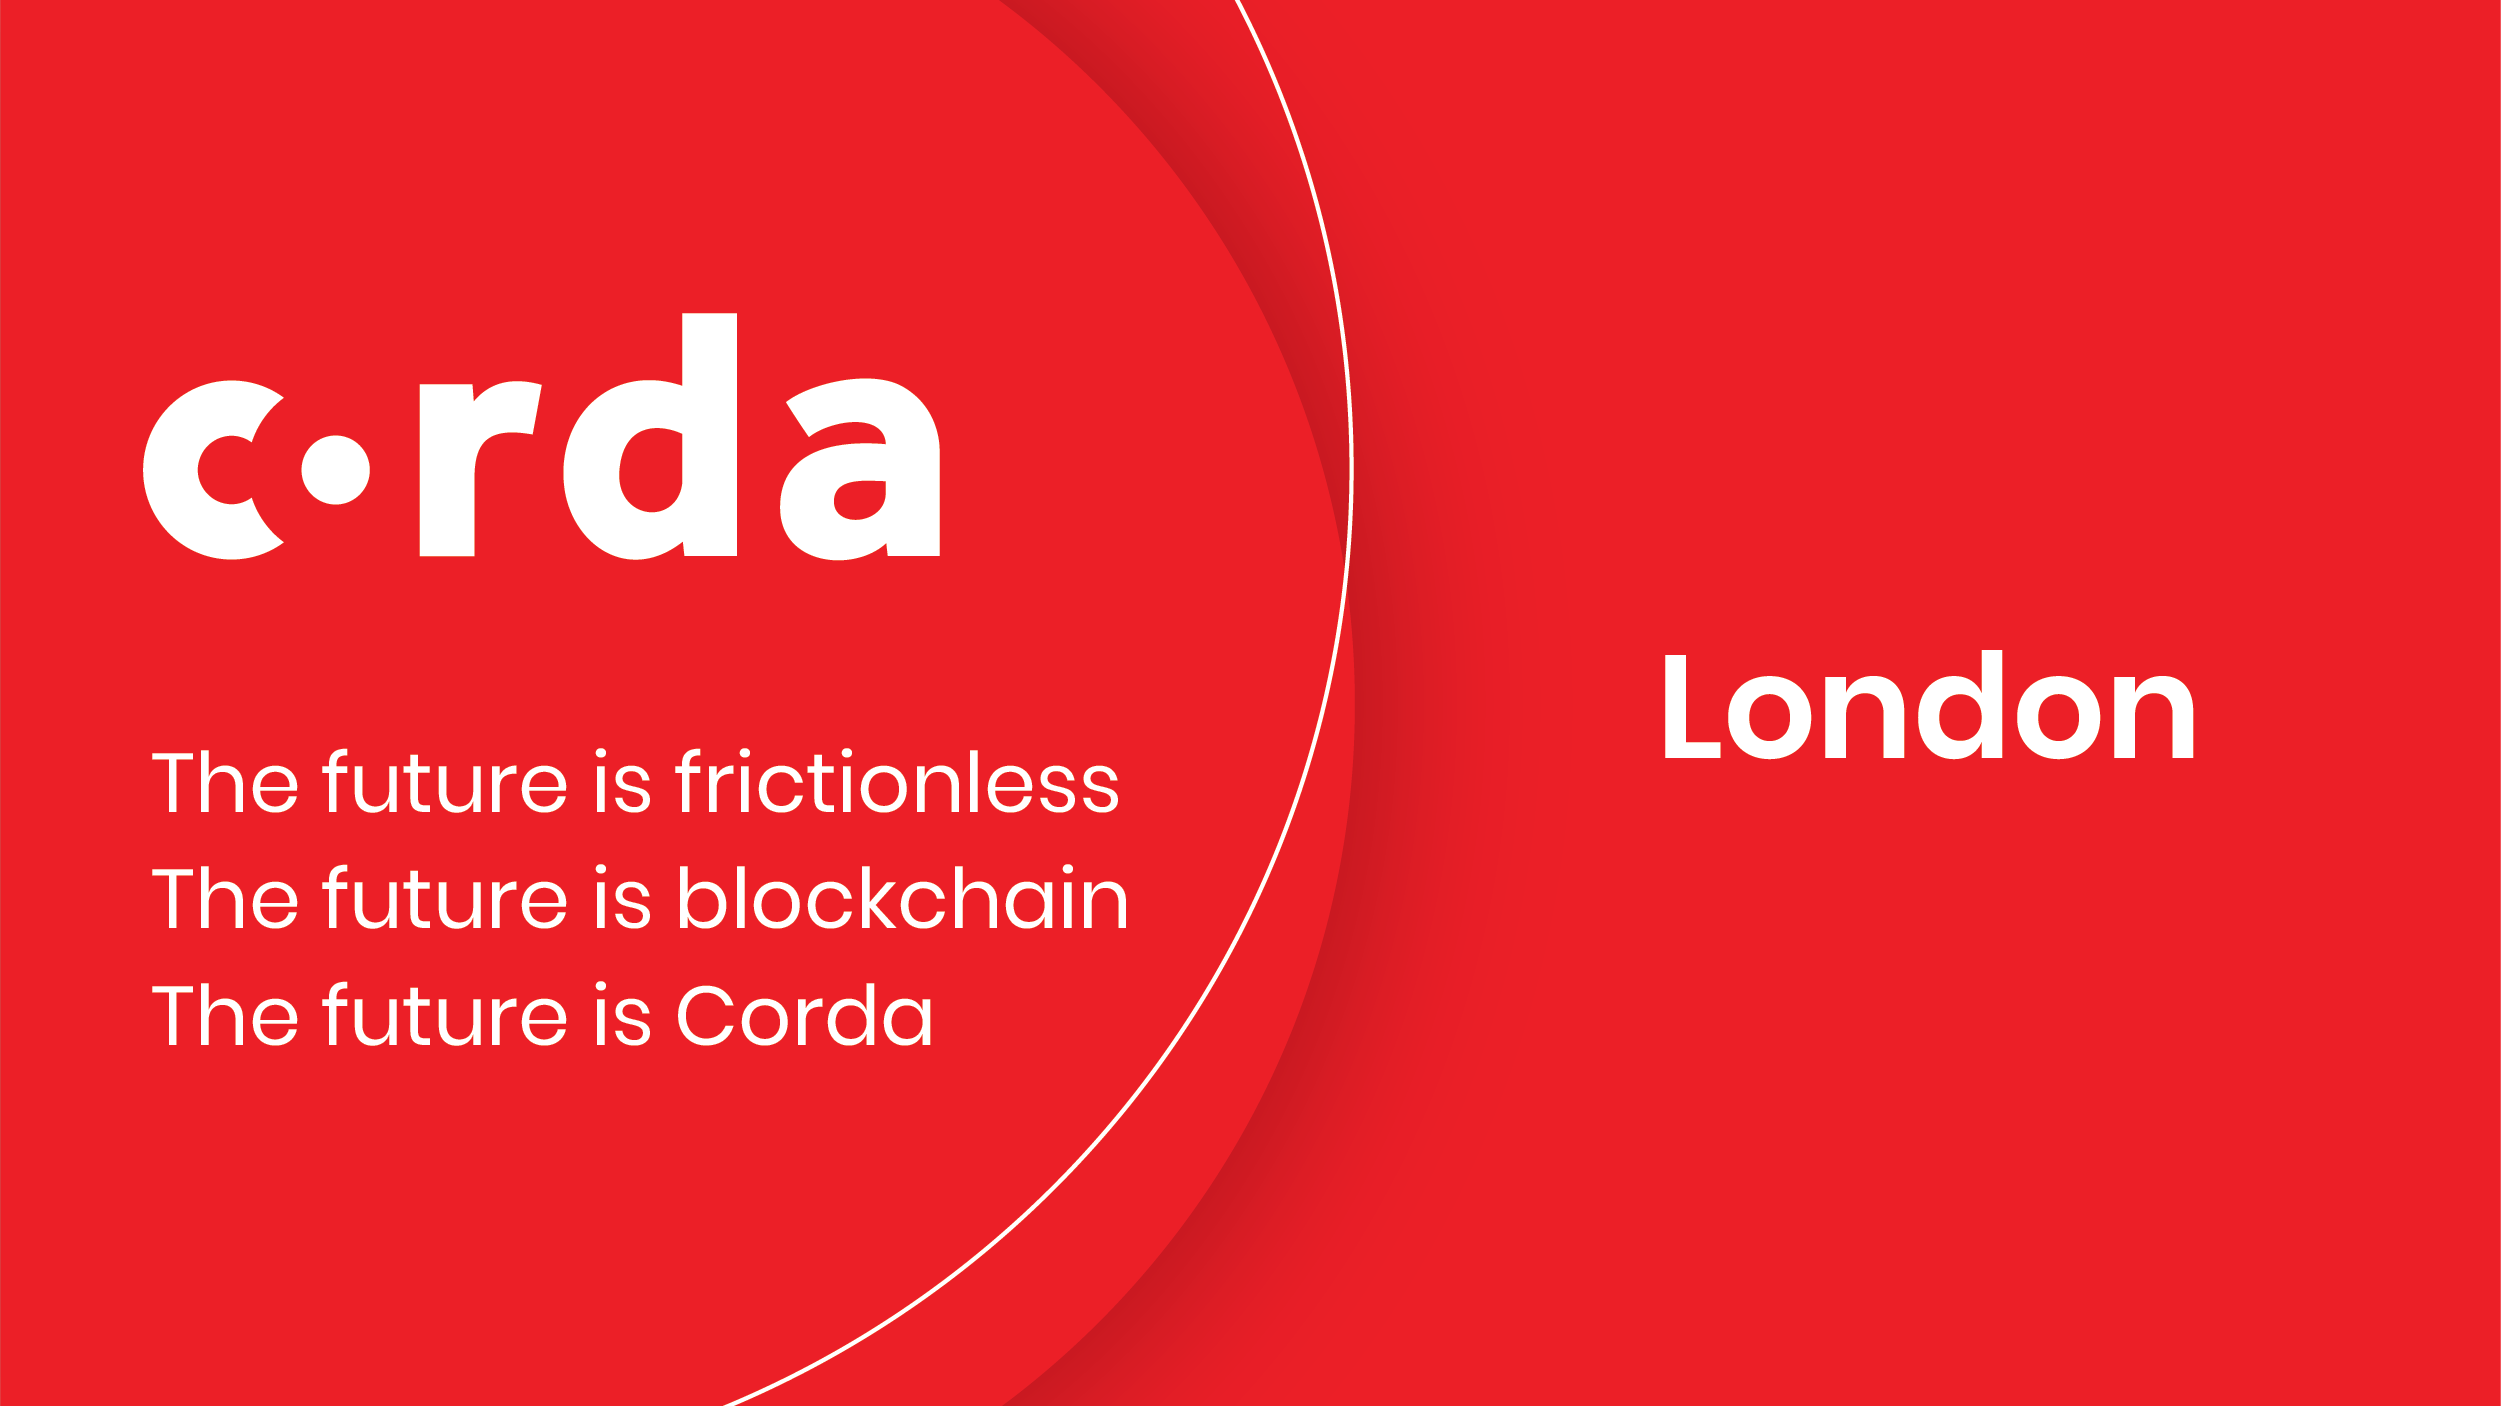 Corda Blockchain London